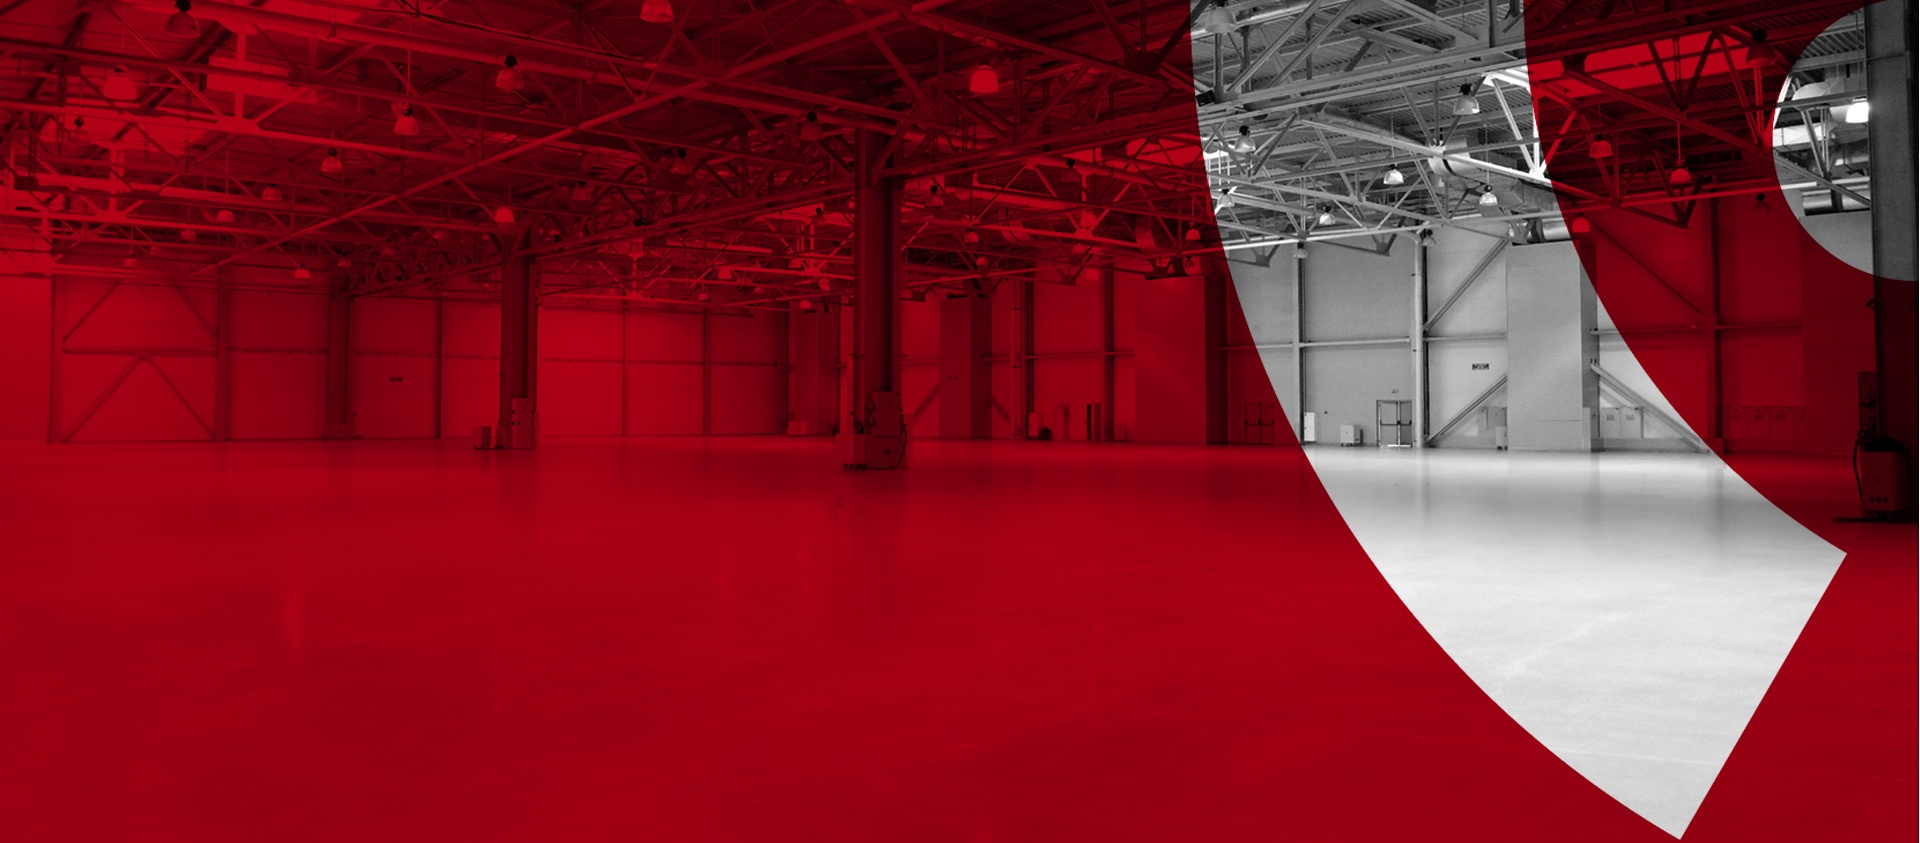 PROFESSIONAL MAINTENANCE OF INDUSTRIAL FLOORING